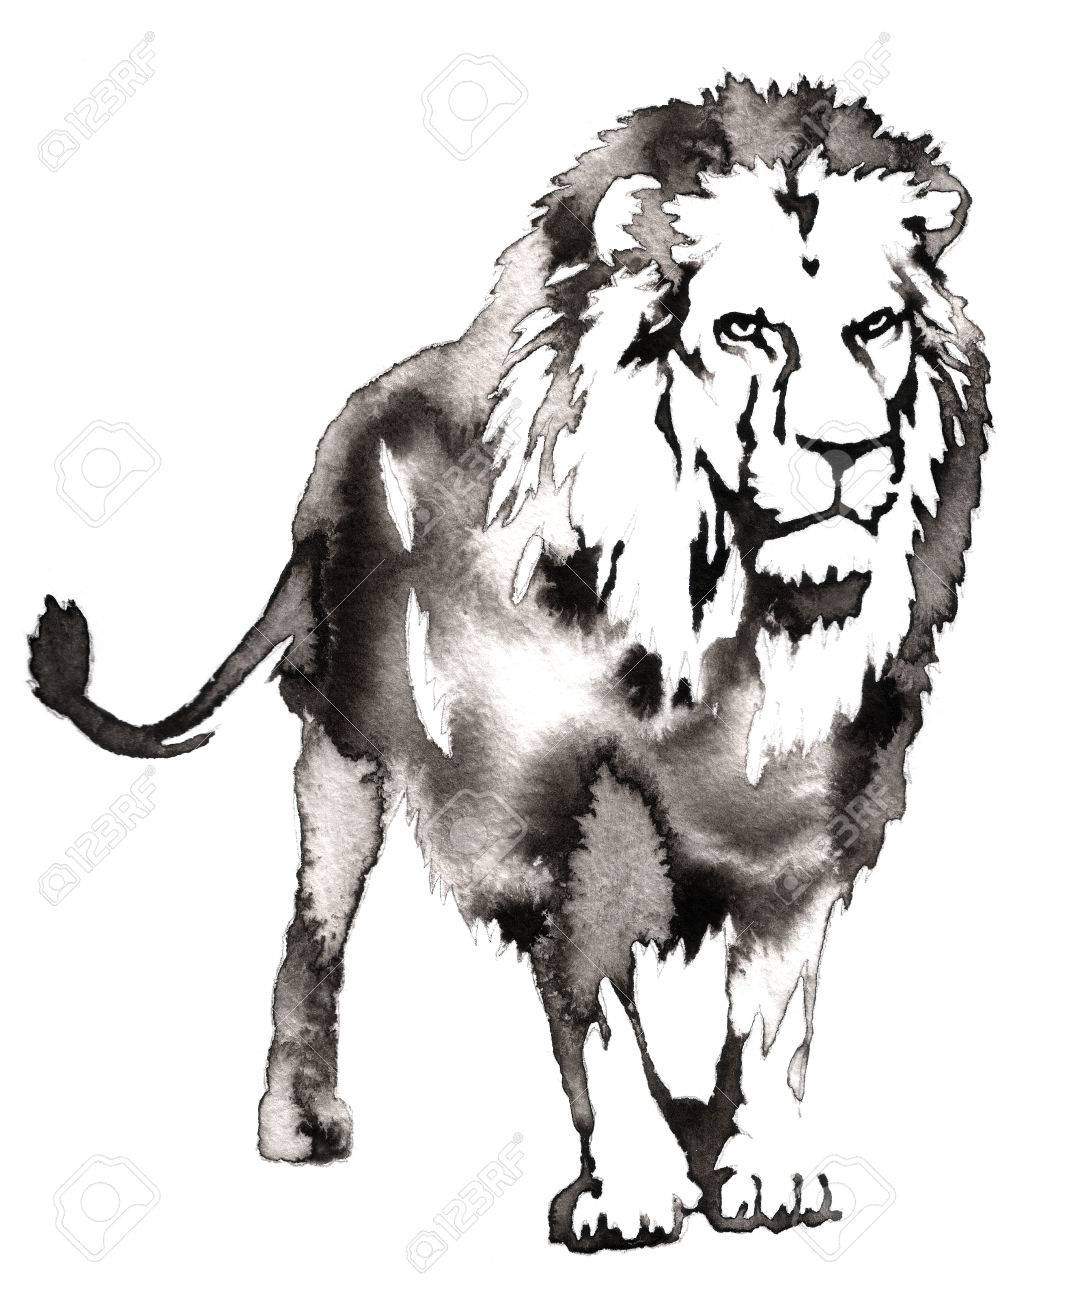 Black and white painting with water and ink draw lion illustration stock illustration 59716281